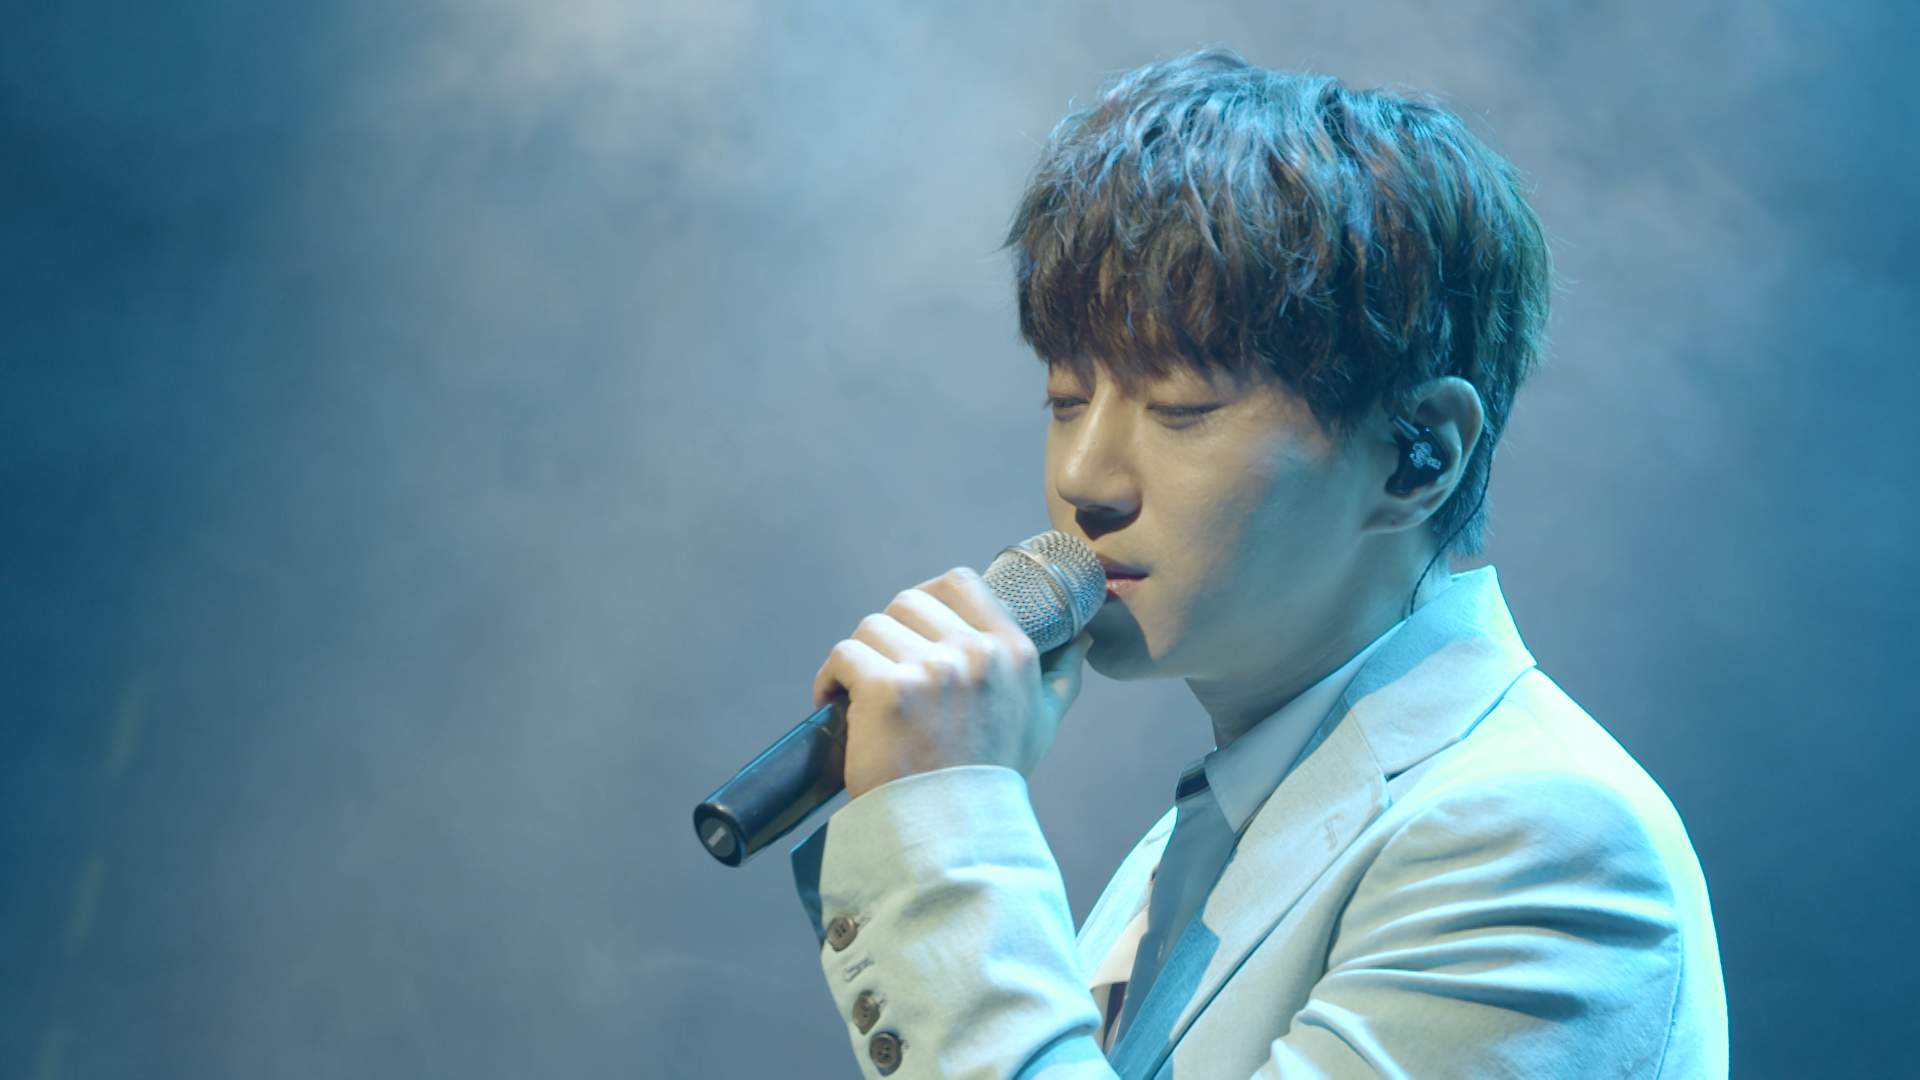 [Replay] 황치열 Chiyeul Hwang SHOWCASE <Be myself>